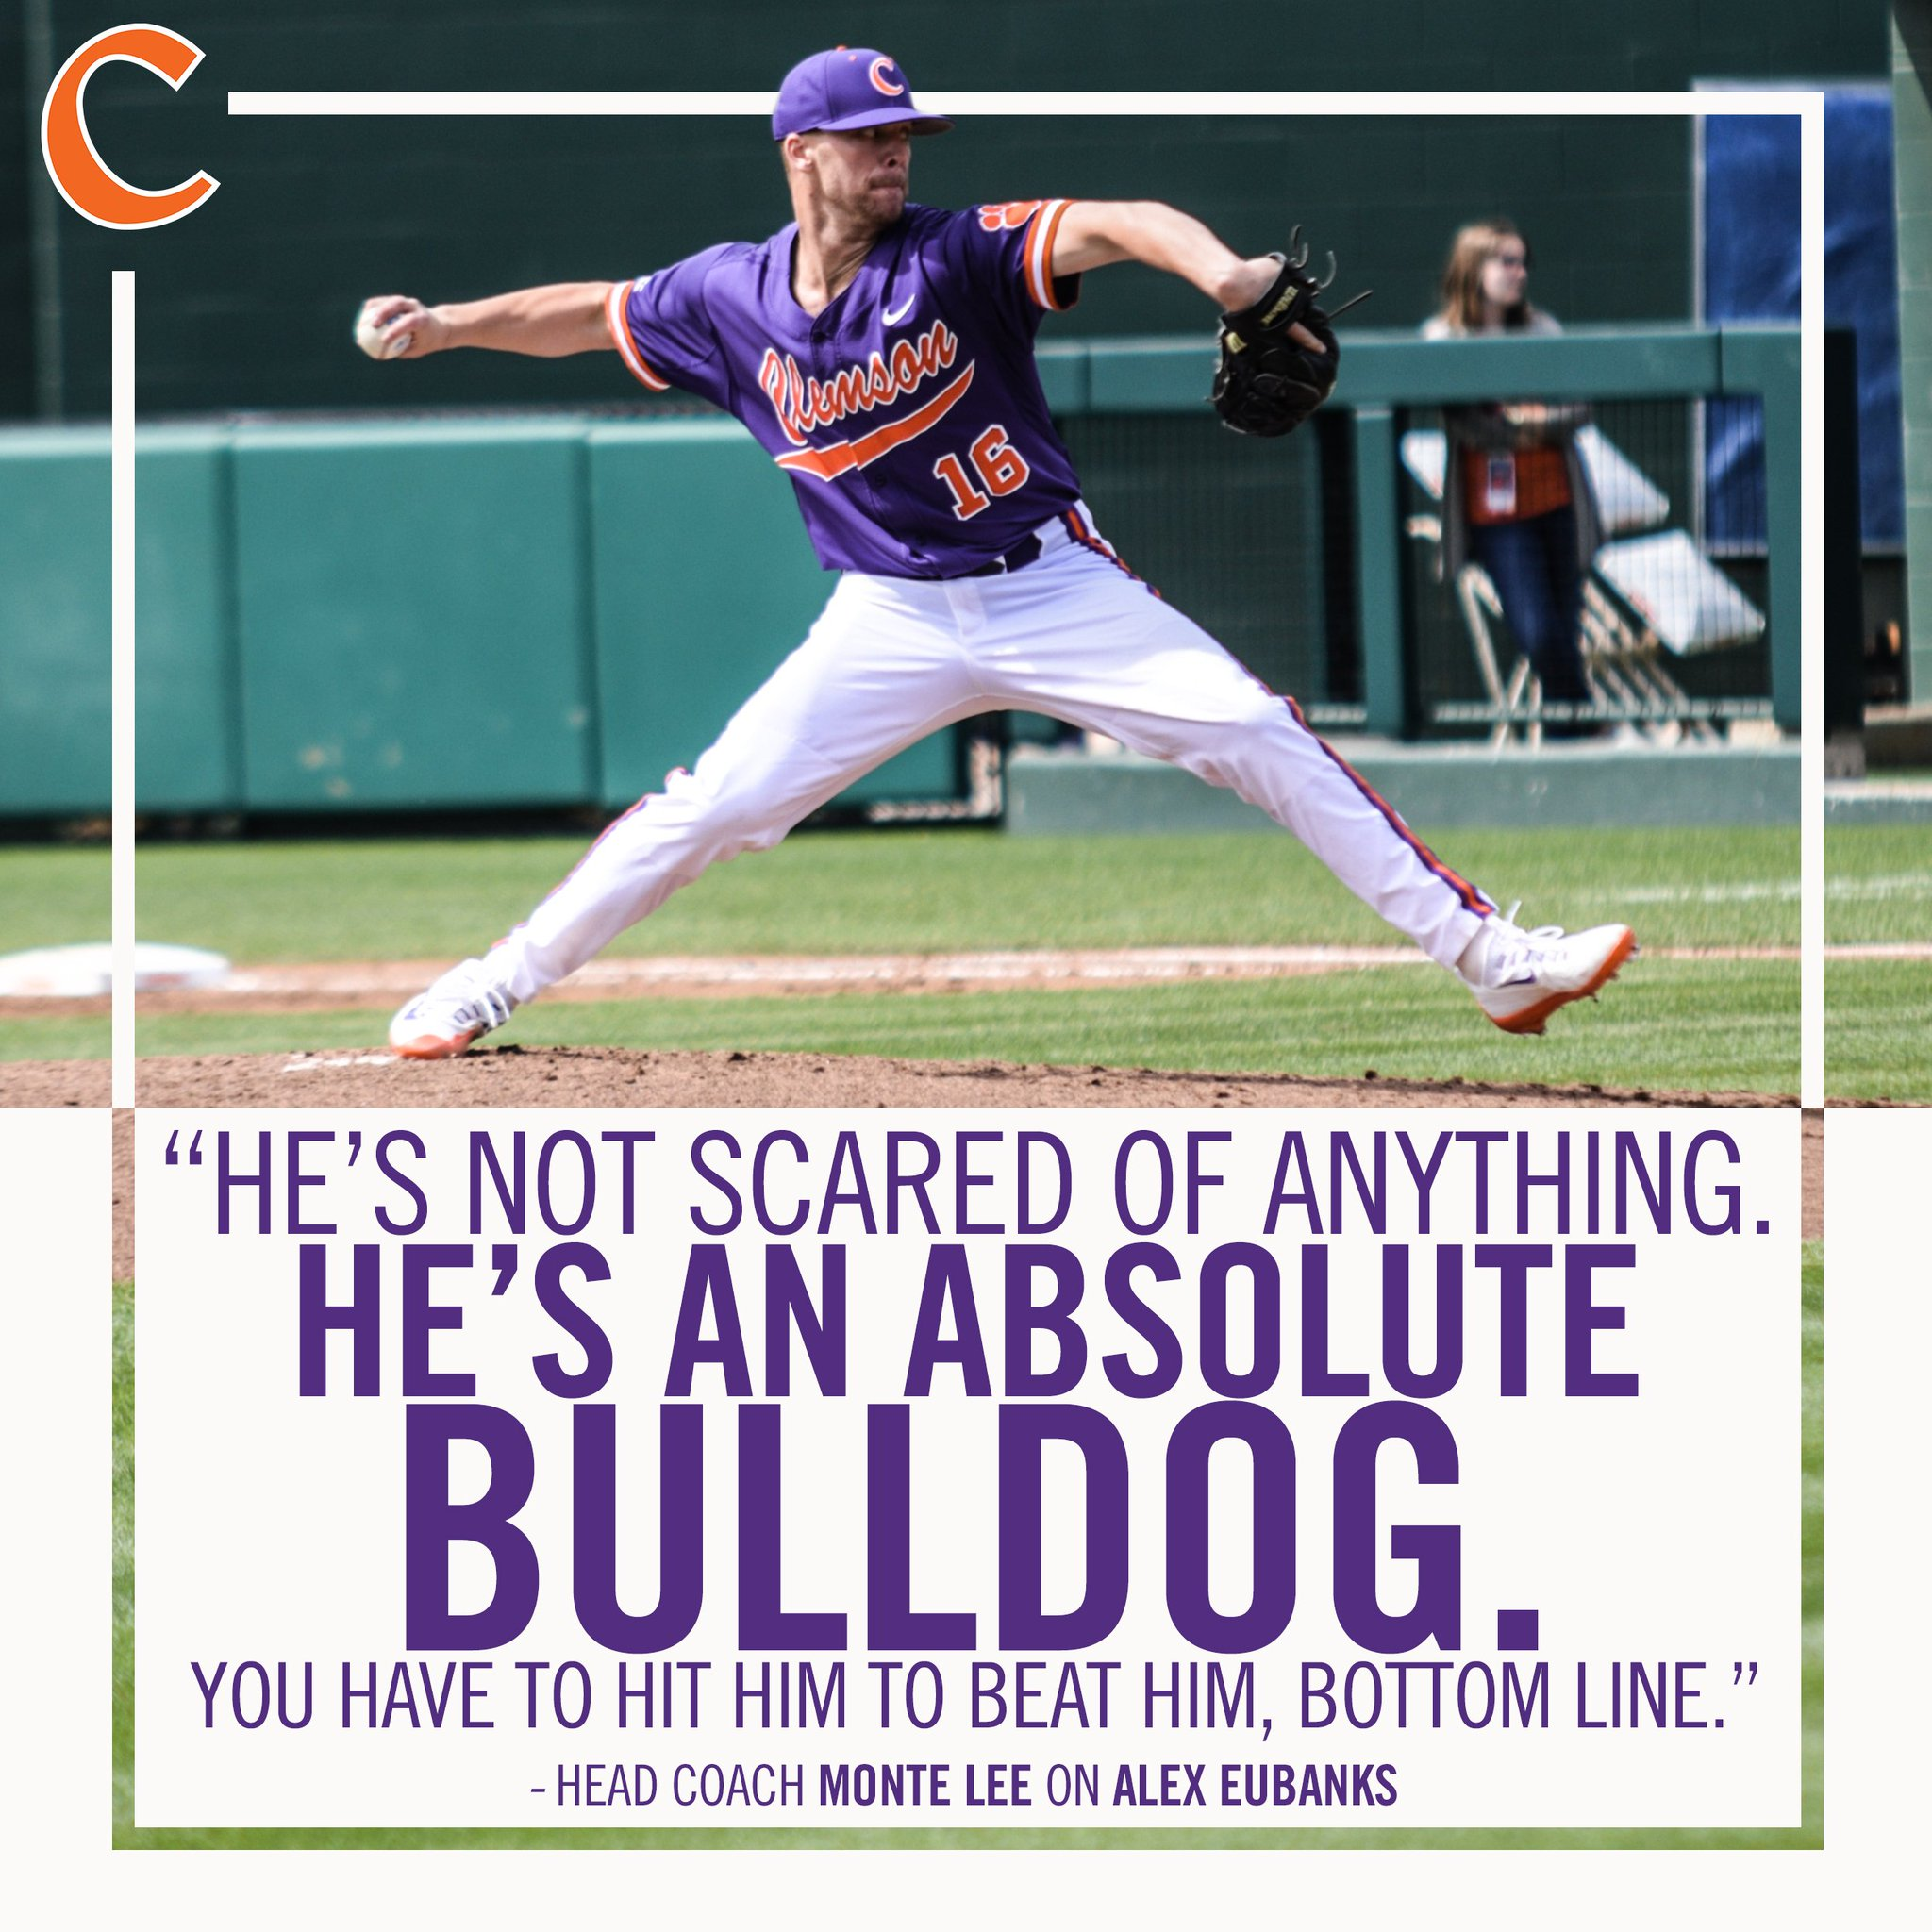 .@MonteLeeCU praised Alex Eubanks' competitiveness after the righthander's strong outing against Virginia this afternoon. https://t.co/h49uKyxfc5